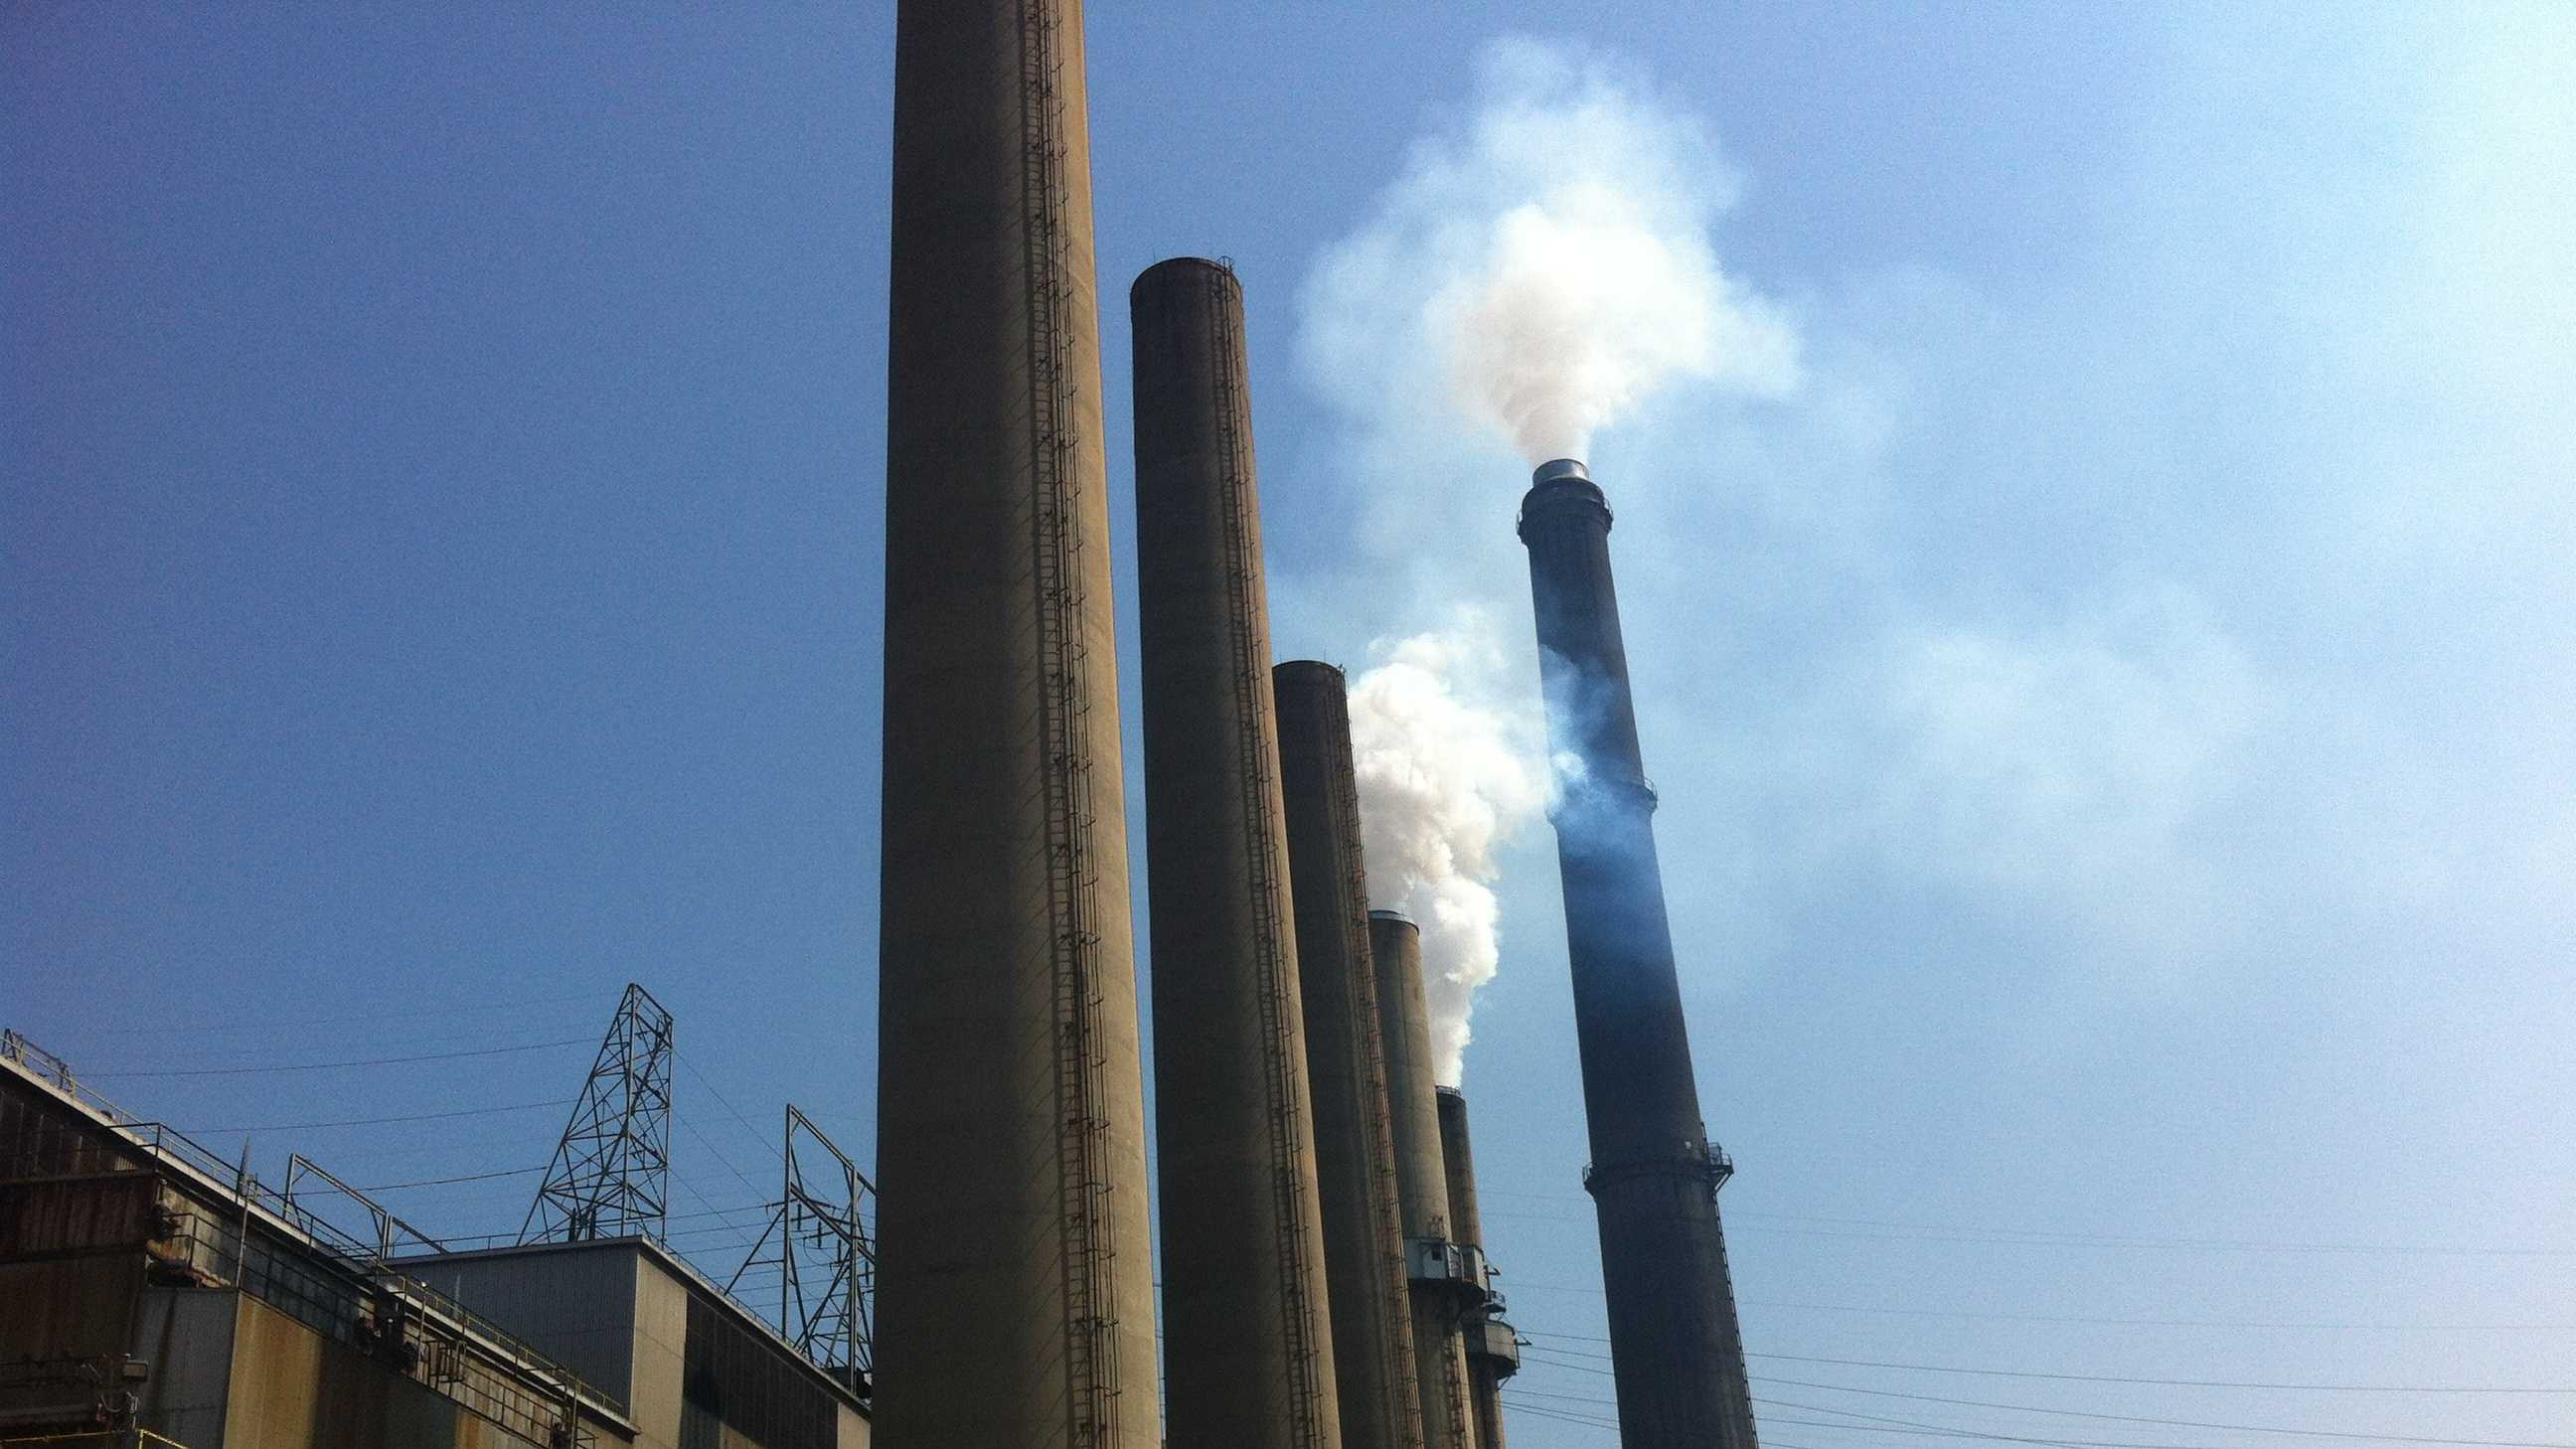 WLKY's Drew Douglas goes into an LG&E power plant, which is even hotter than usual on a triple digit day!